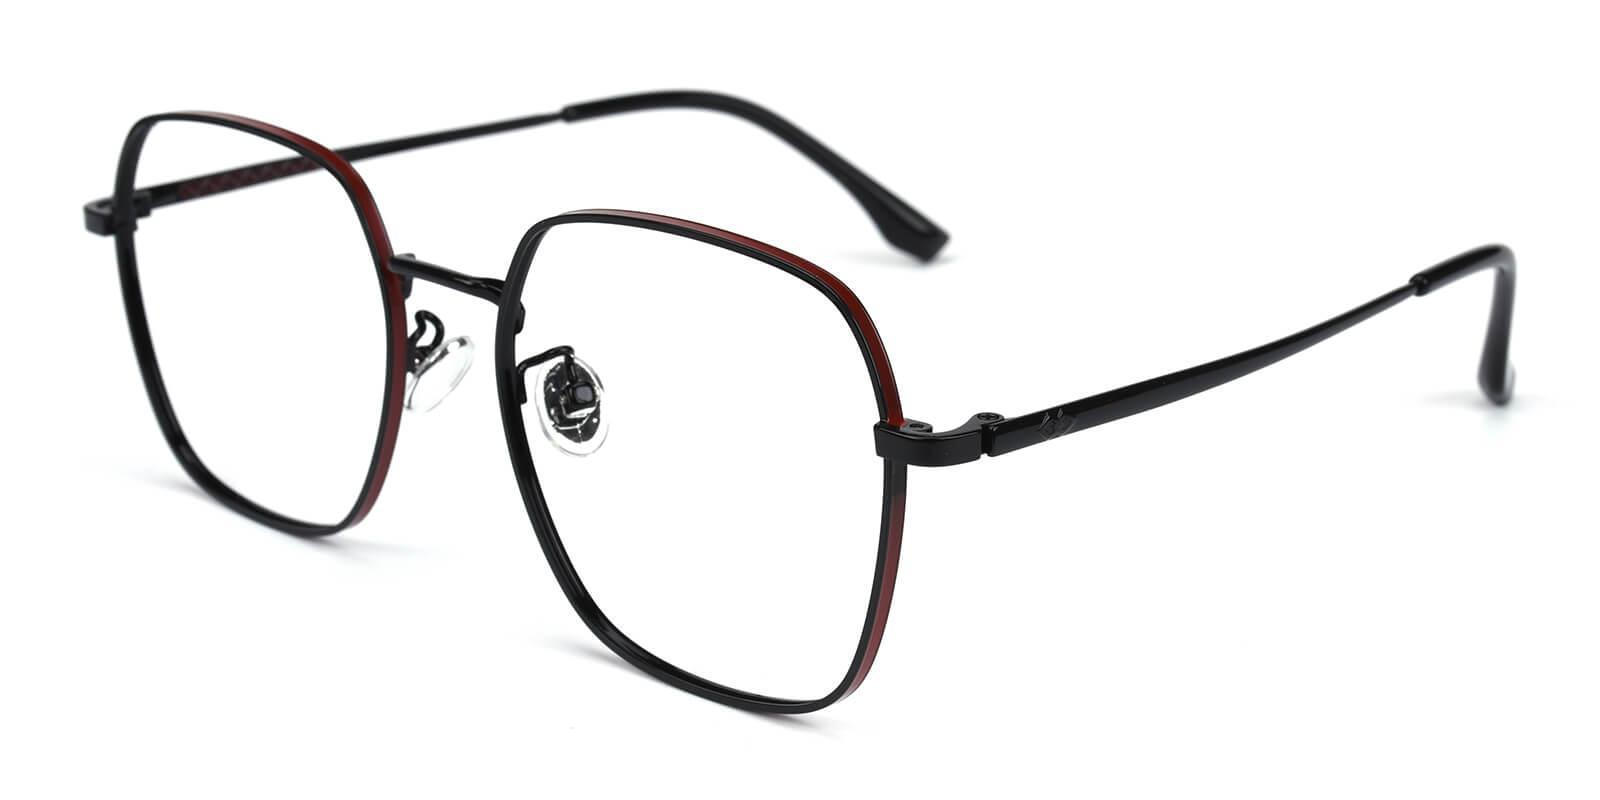 Thelma Black Metal Eyeglasses , NosePads , SpringHinges Frames from ABBE Glasses